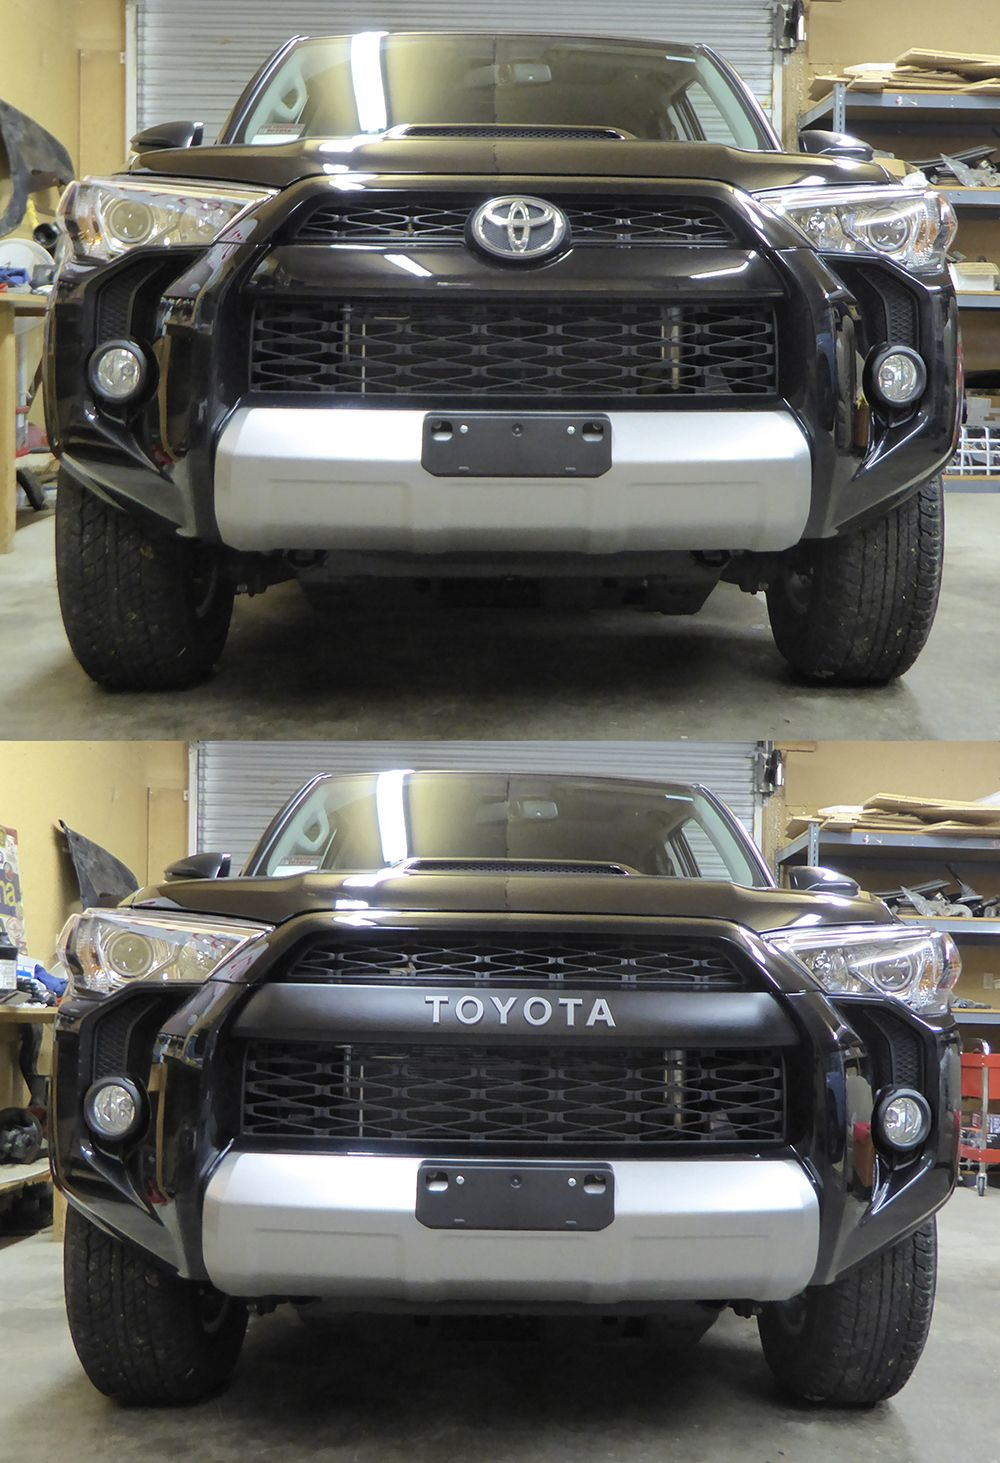 TRD Pro 4Runner Grill Swap Kit 5th Gen 4Runner